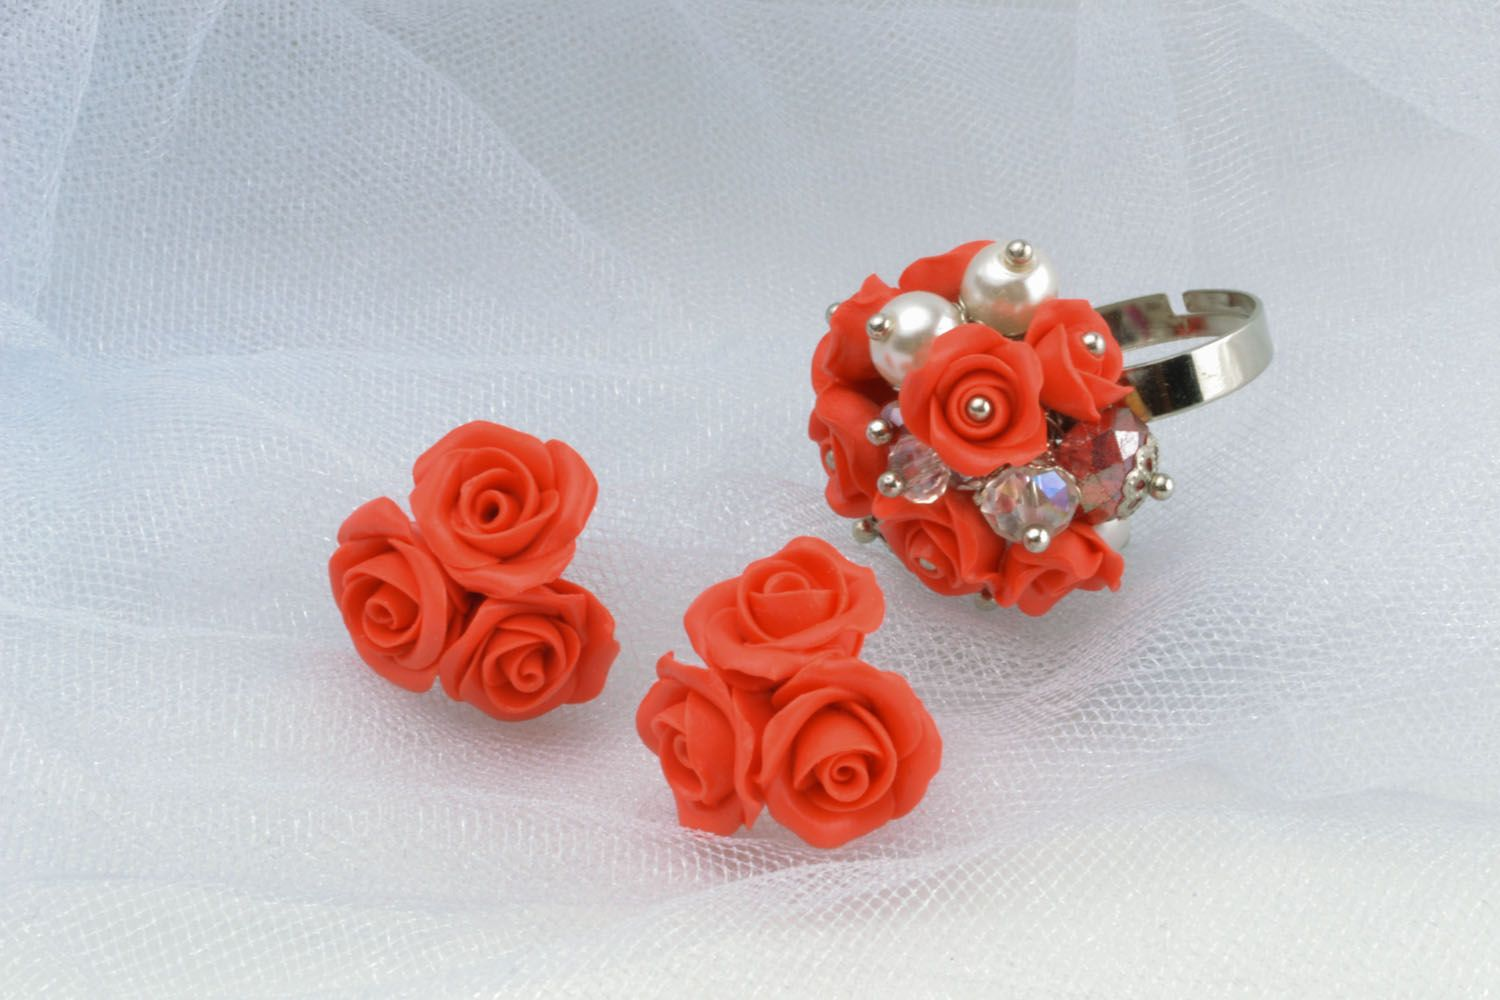 Homemade evening ring and earrings photo 1